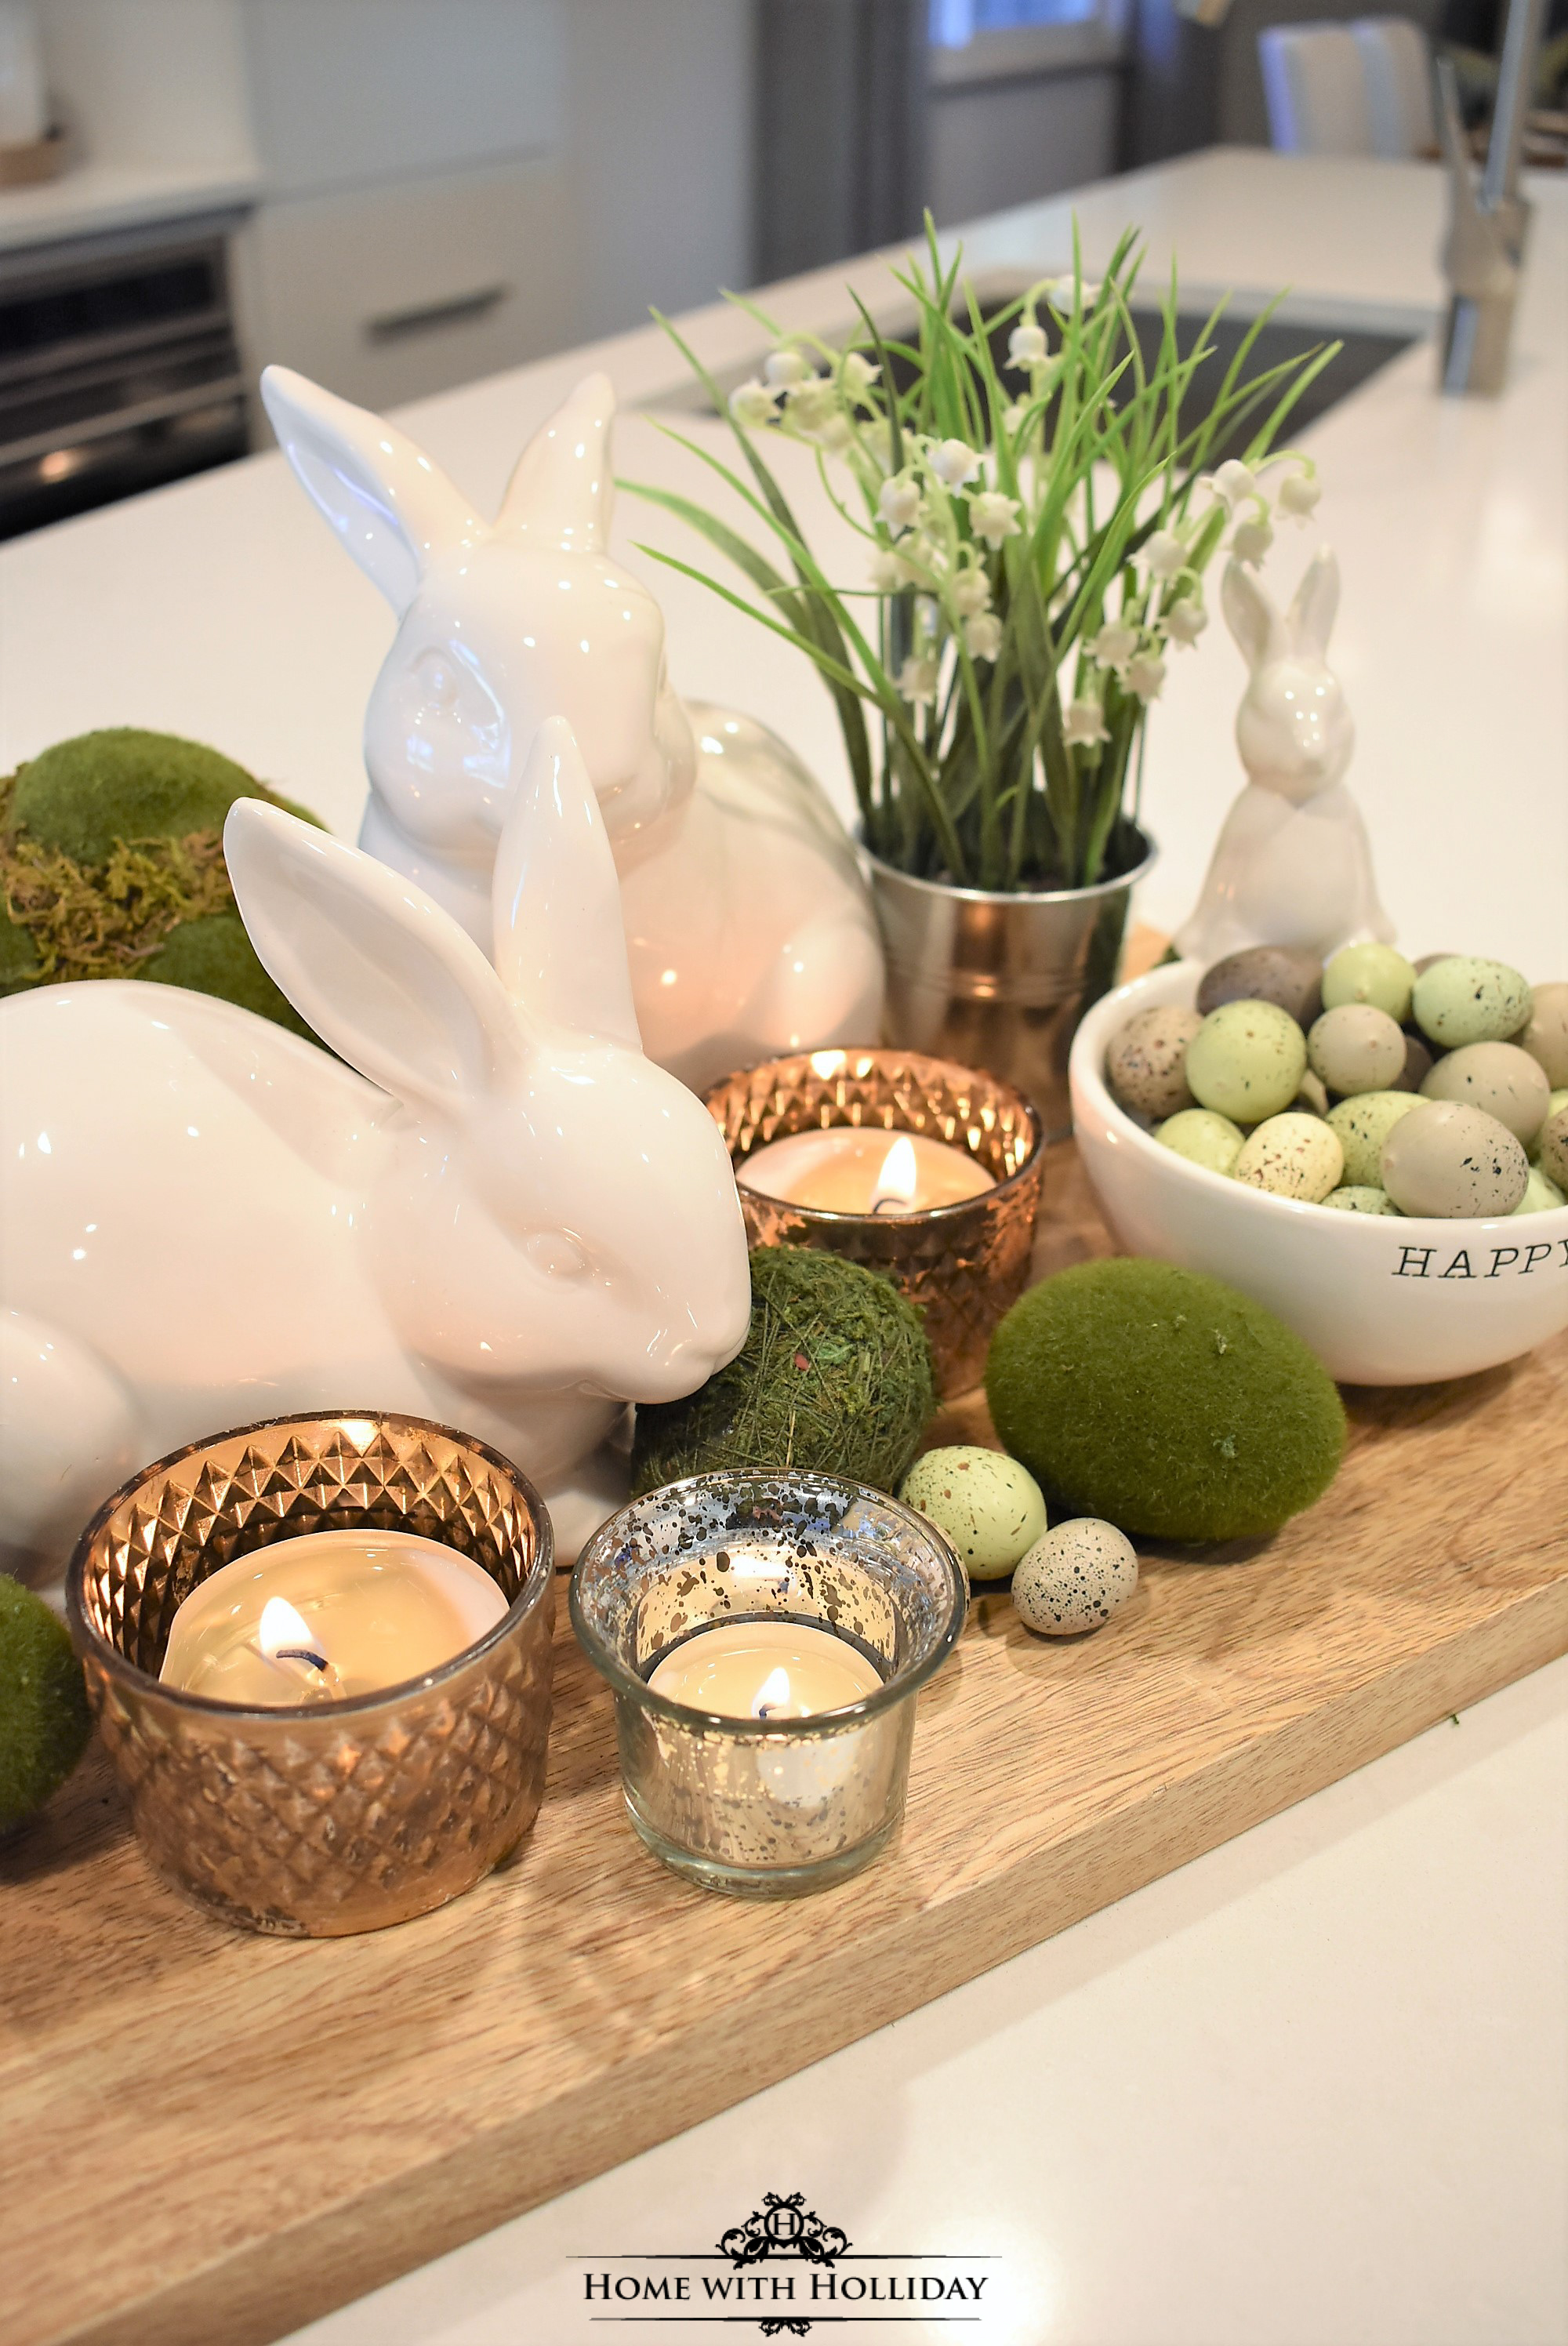 Wonderful Easter Decor Part - 3: Tips For Creating Simple Spring Or Easter Decor